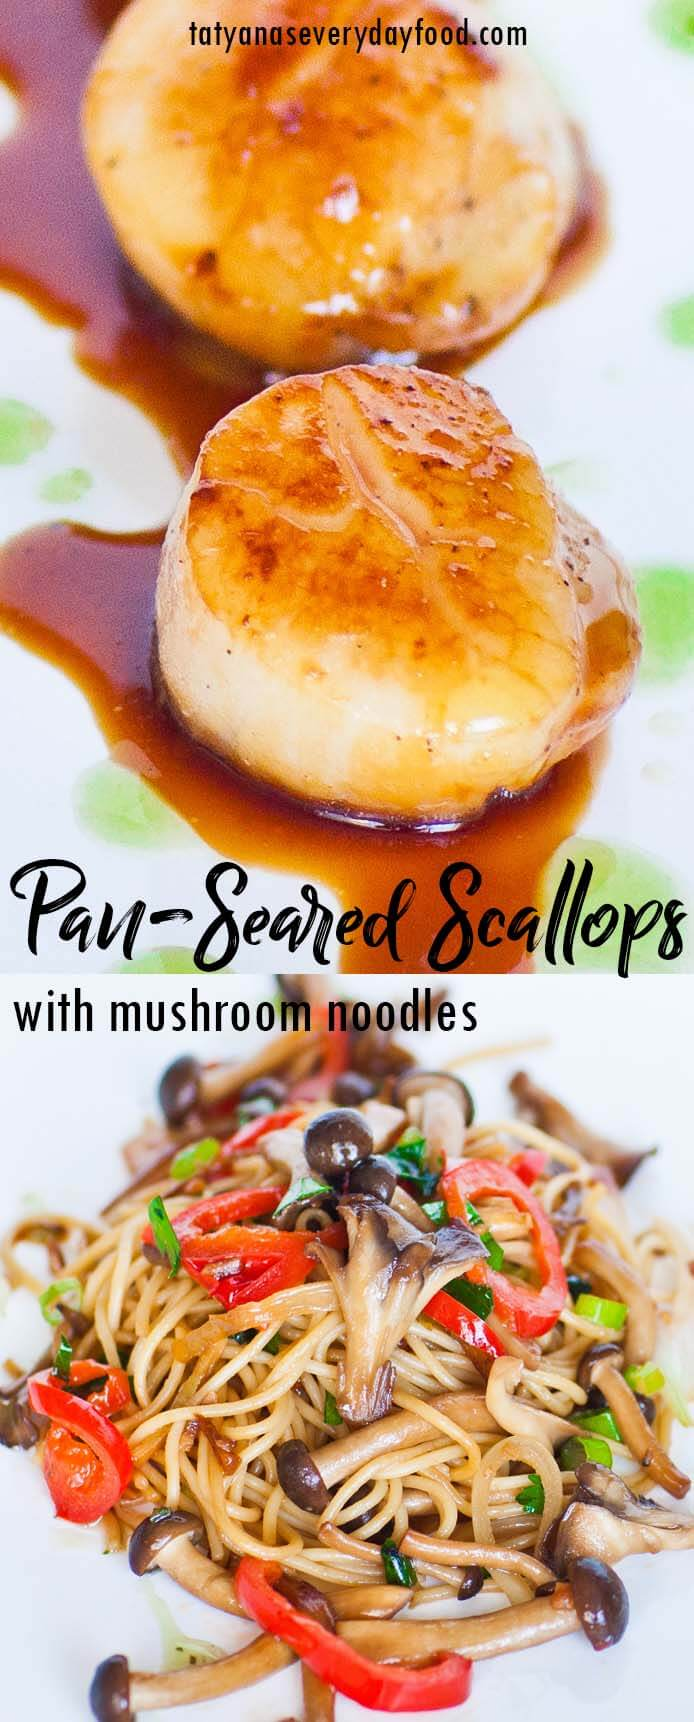 Pan-Seared Scallops with mushroom noodles